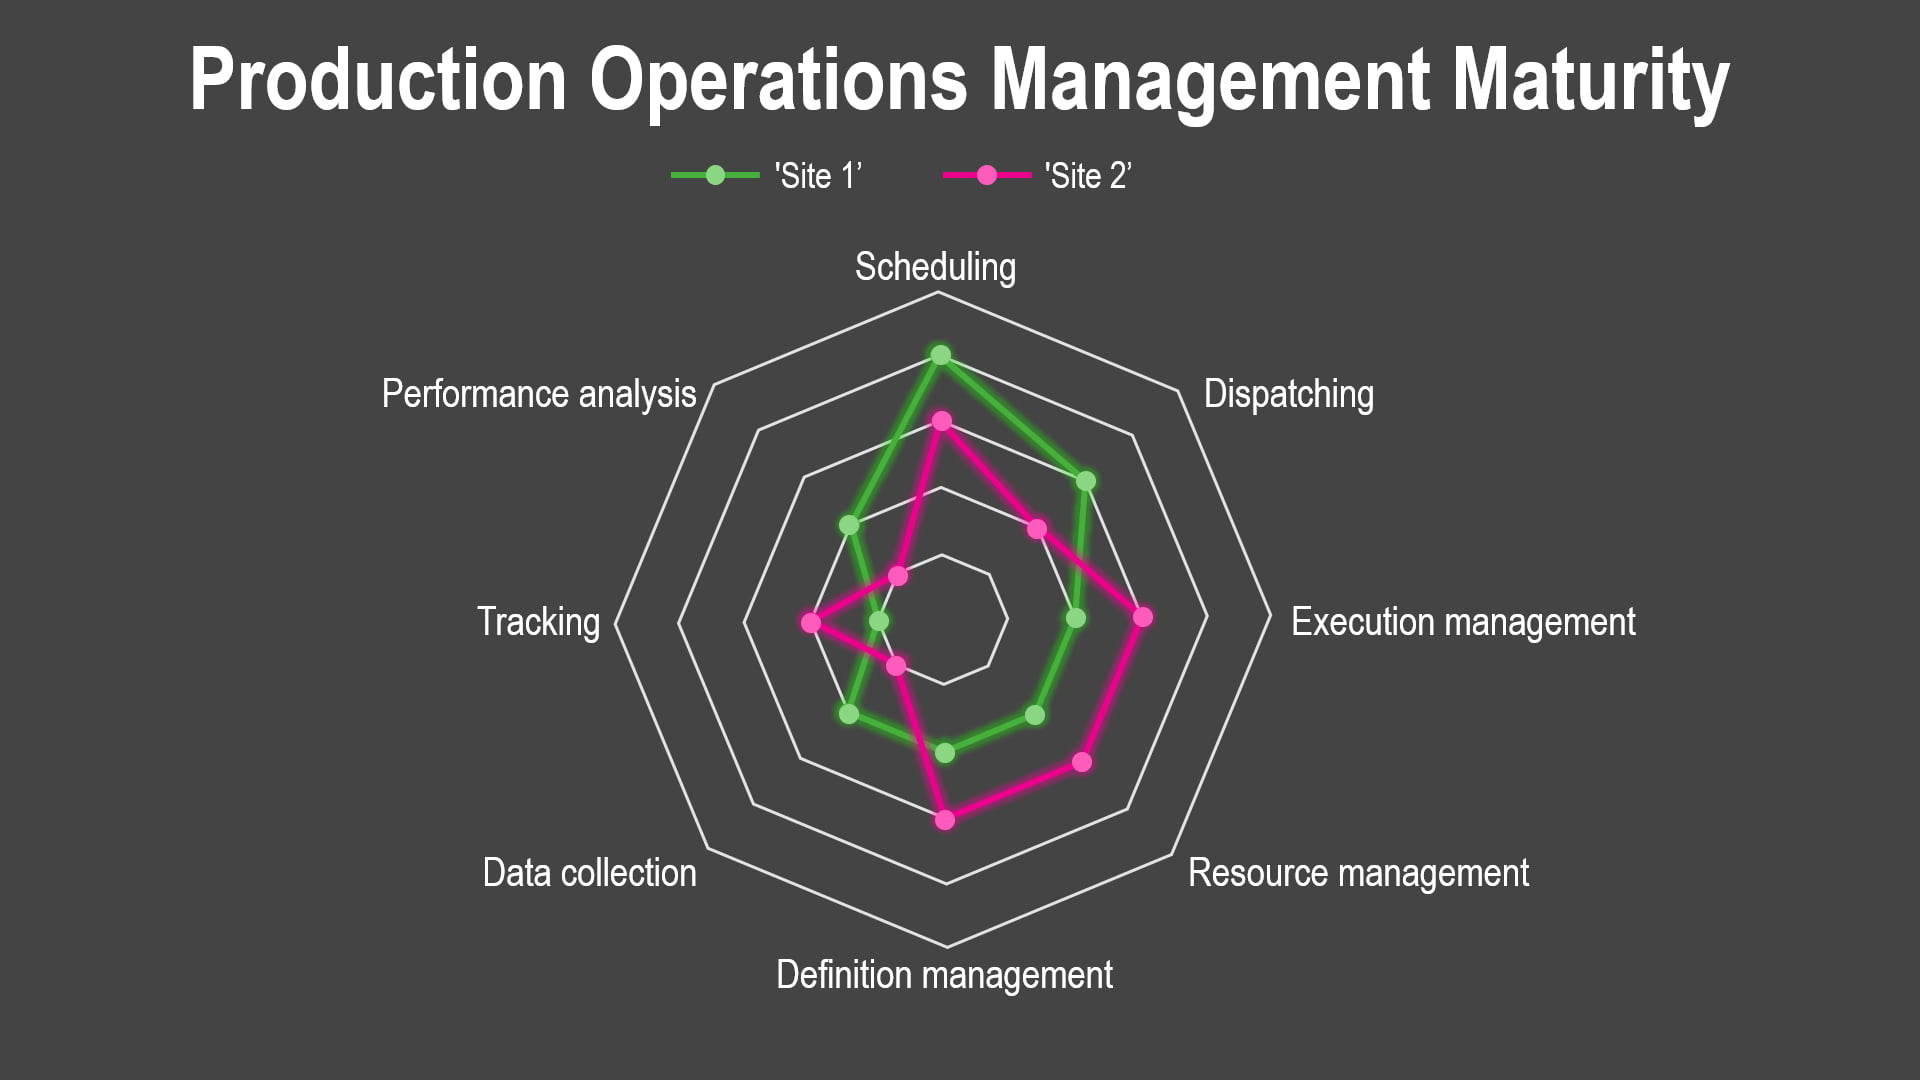 Production Operations Management Maturity graph